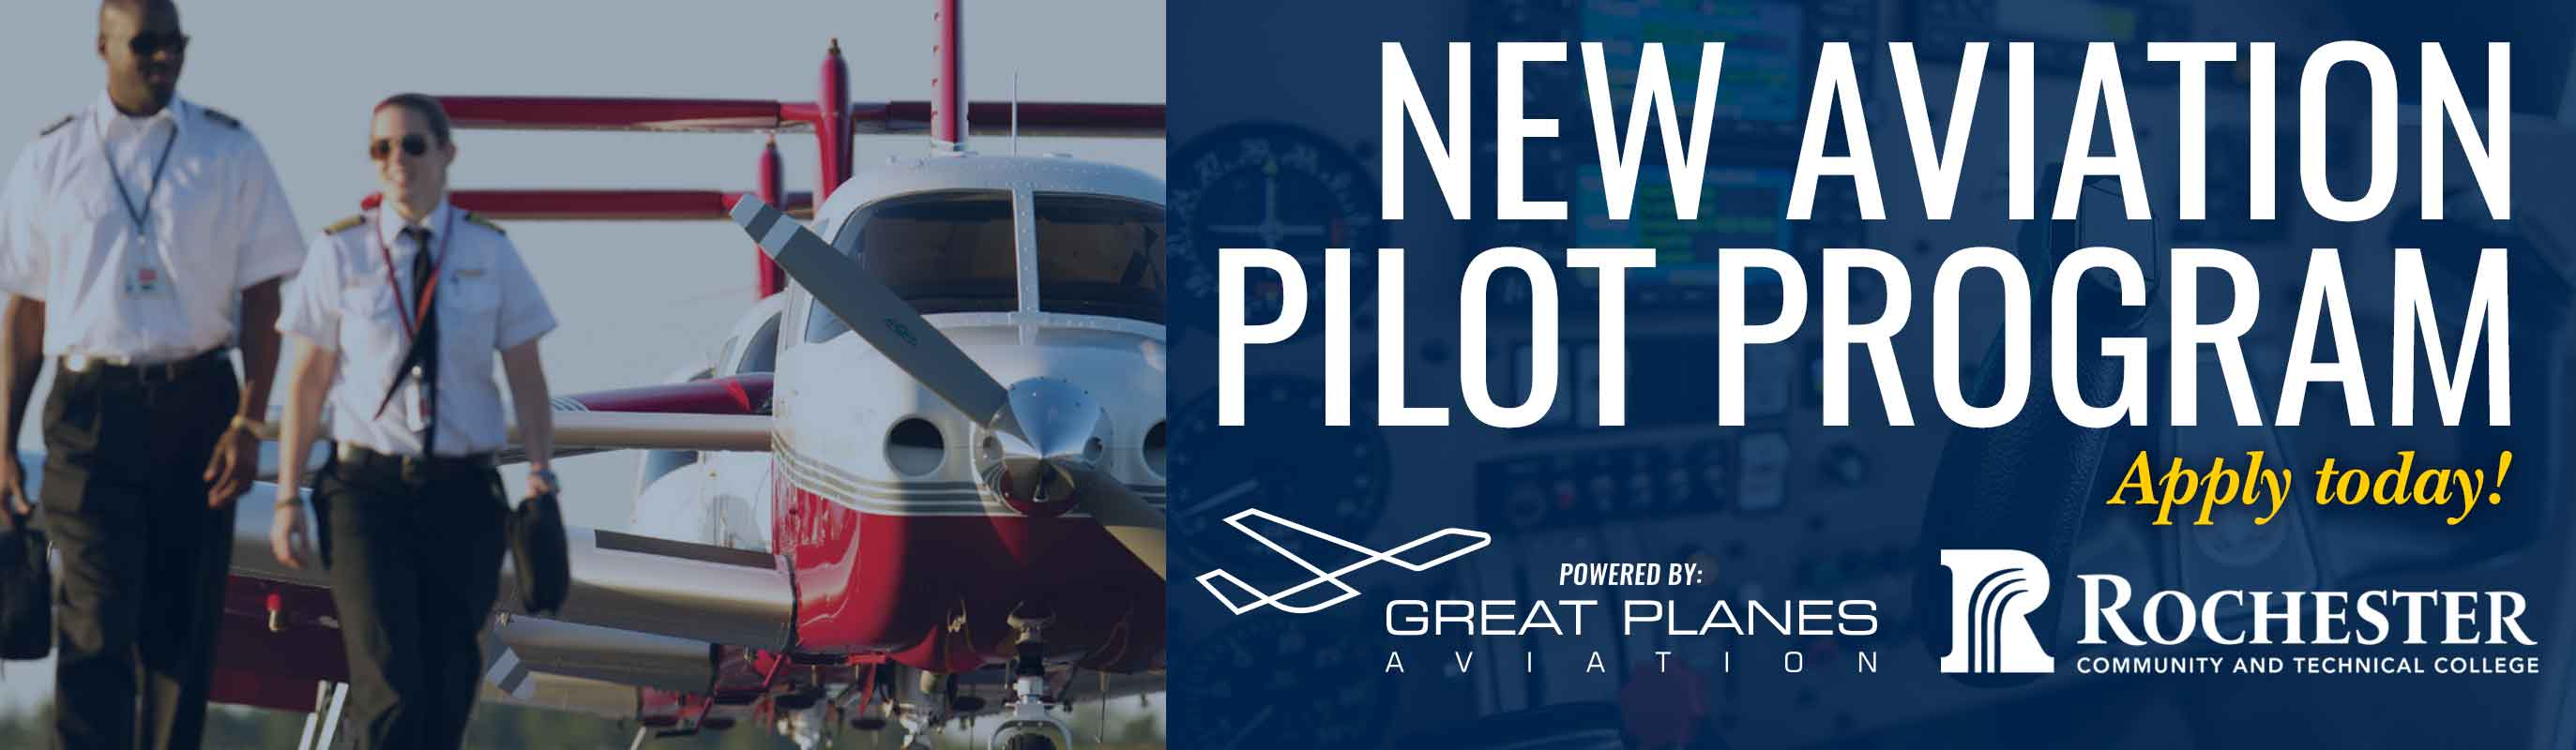 Aviation Pilot Program